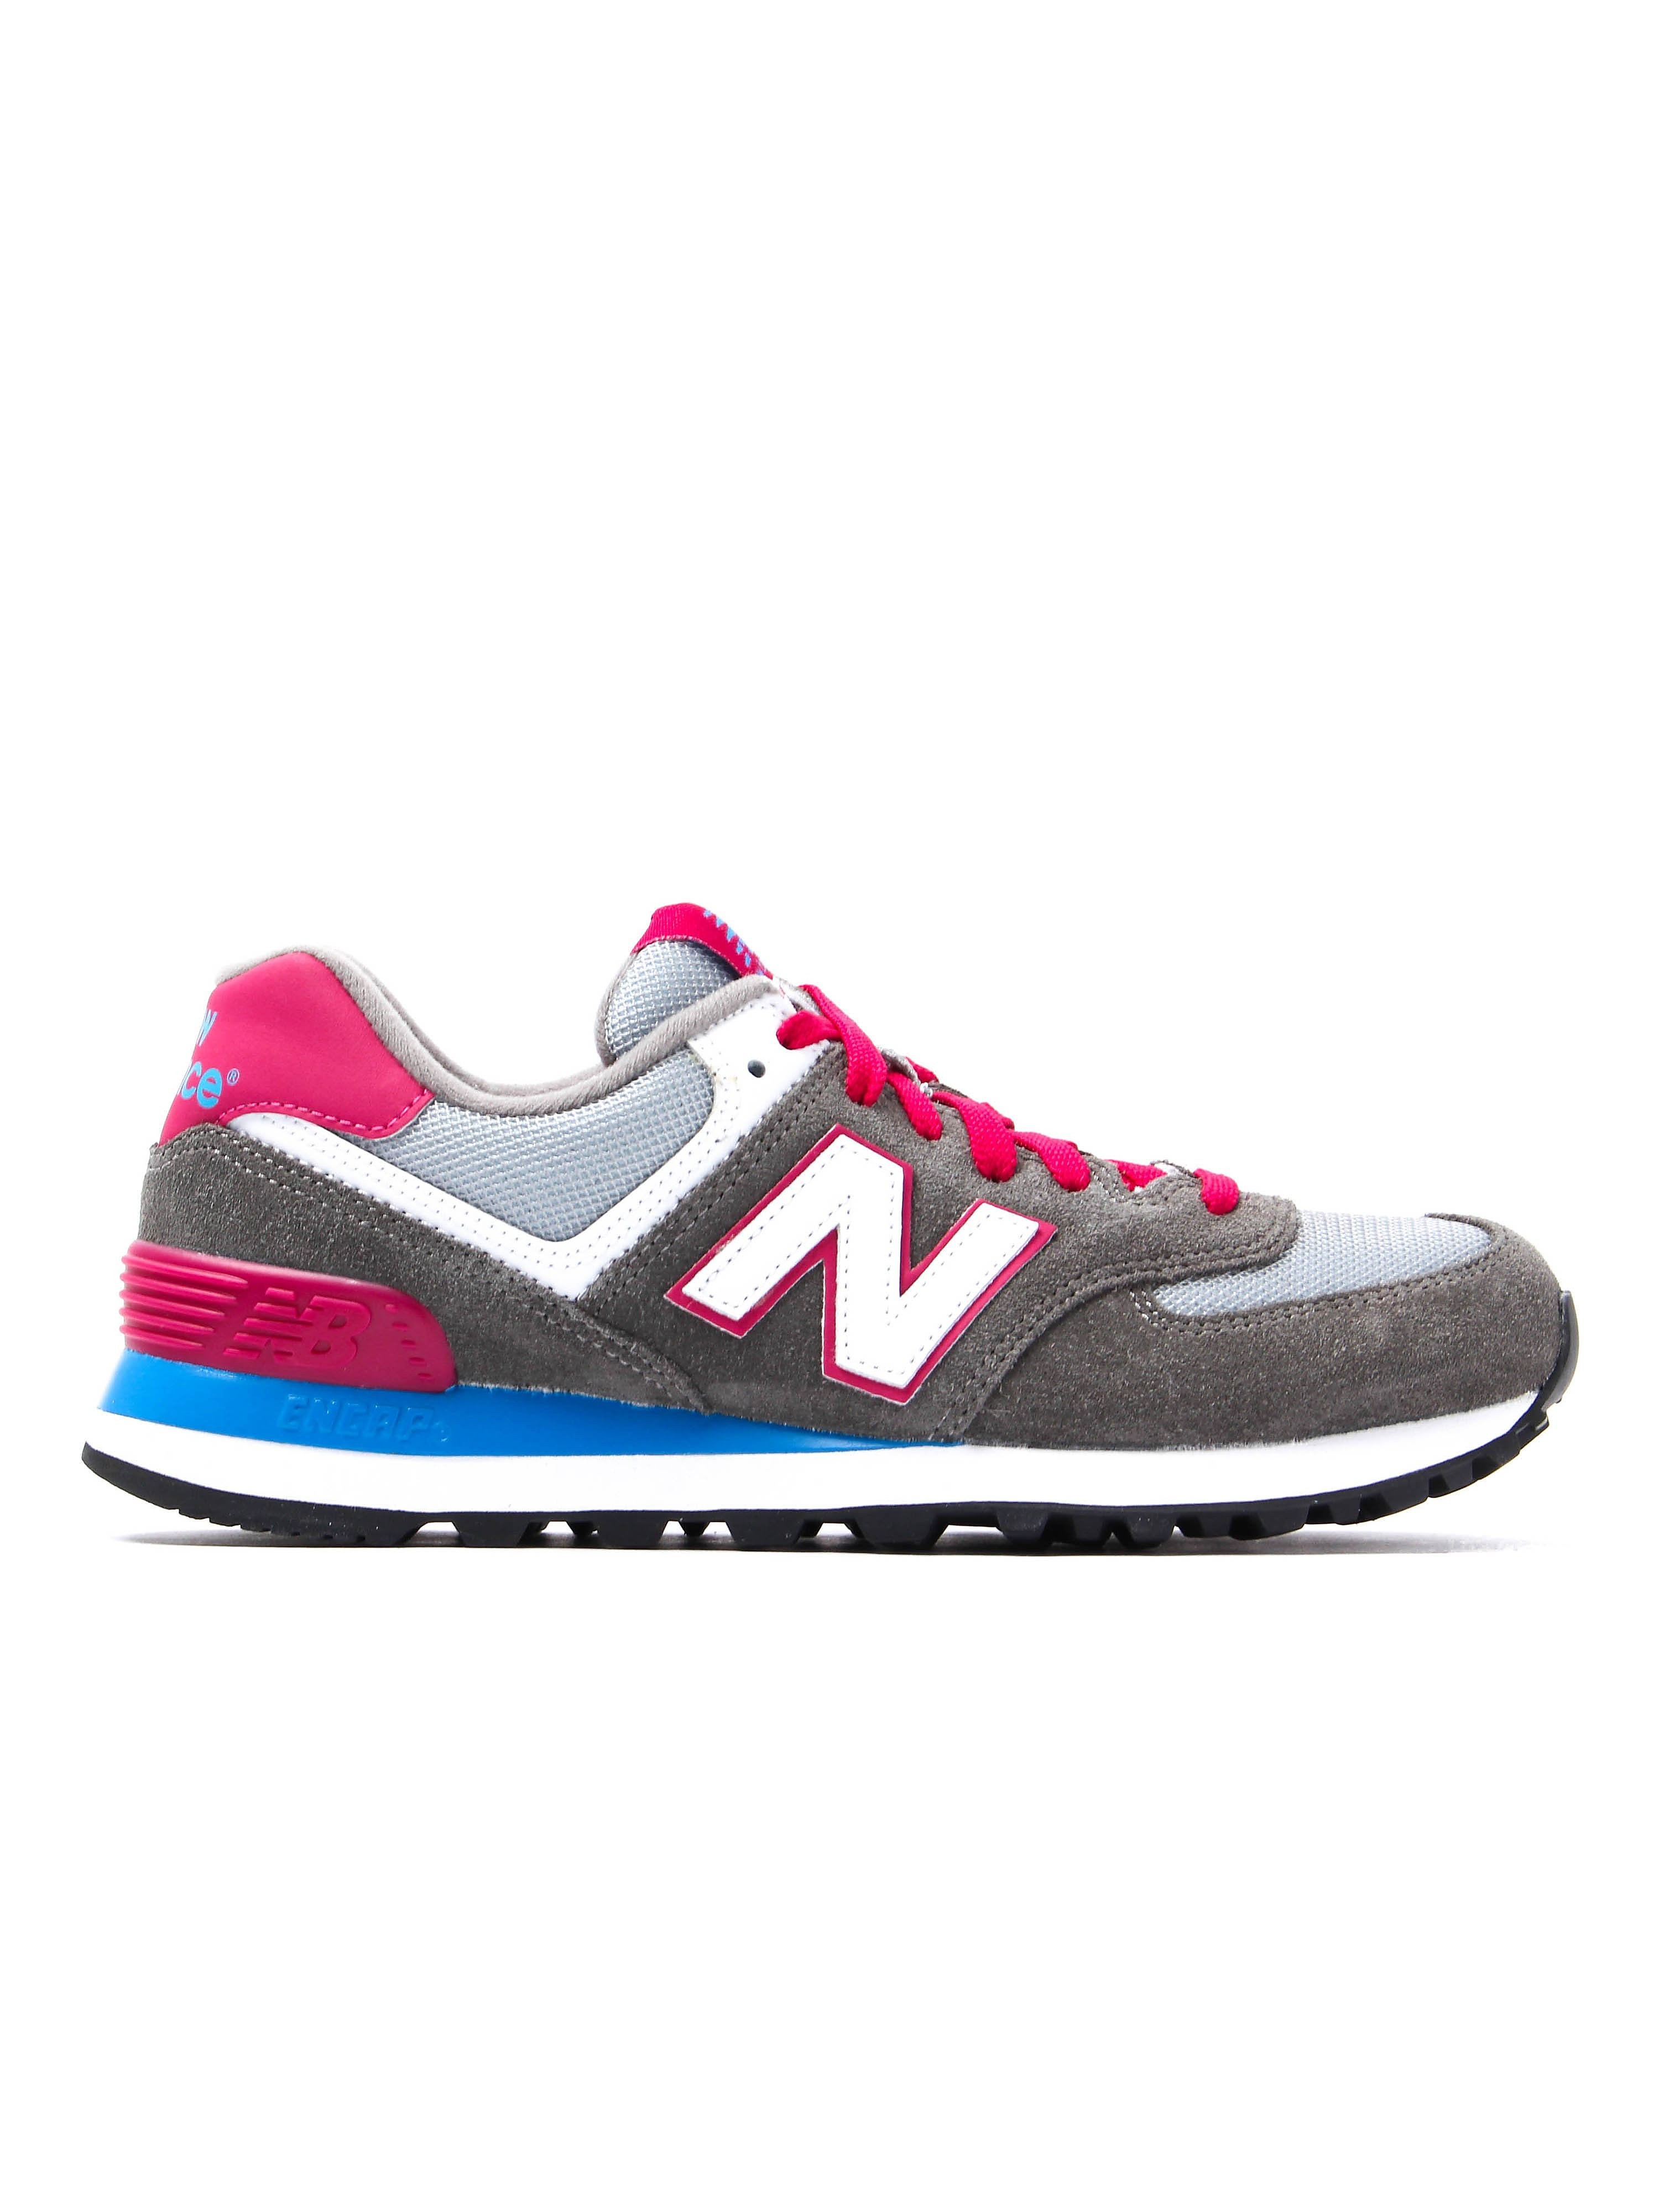 New Balance Women's 574 Low Top Trainers - Grey Suede